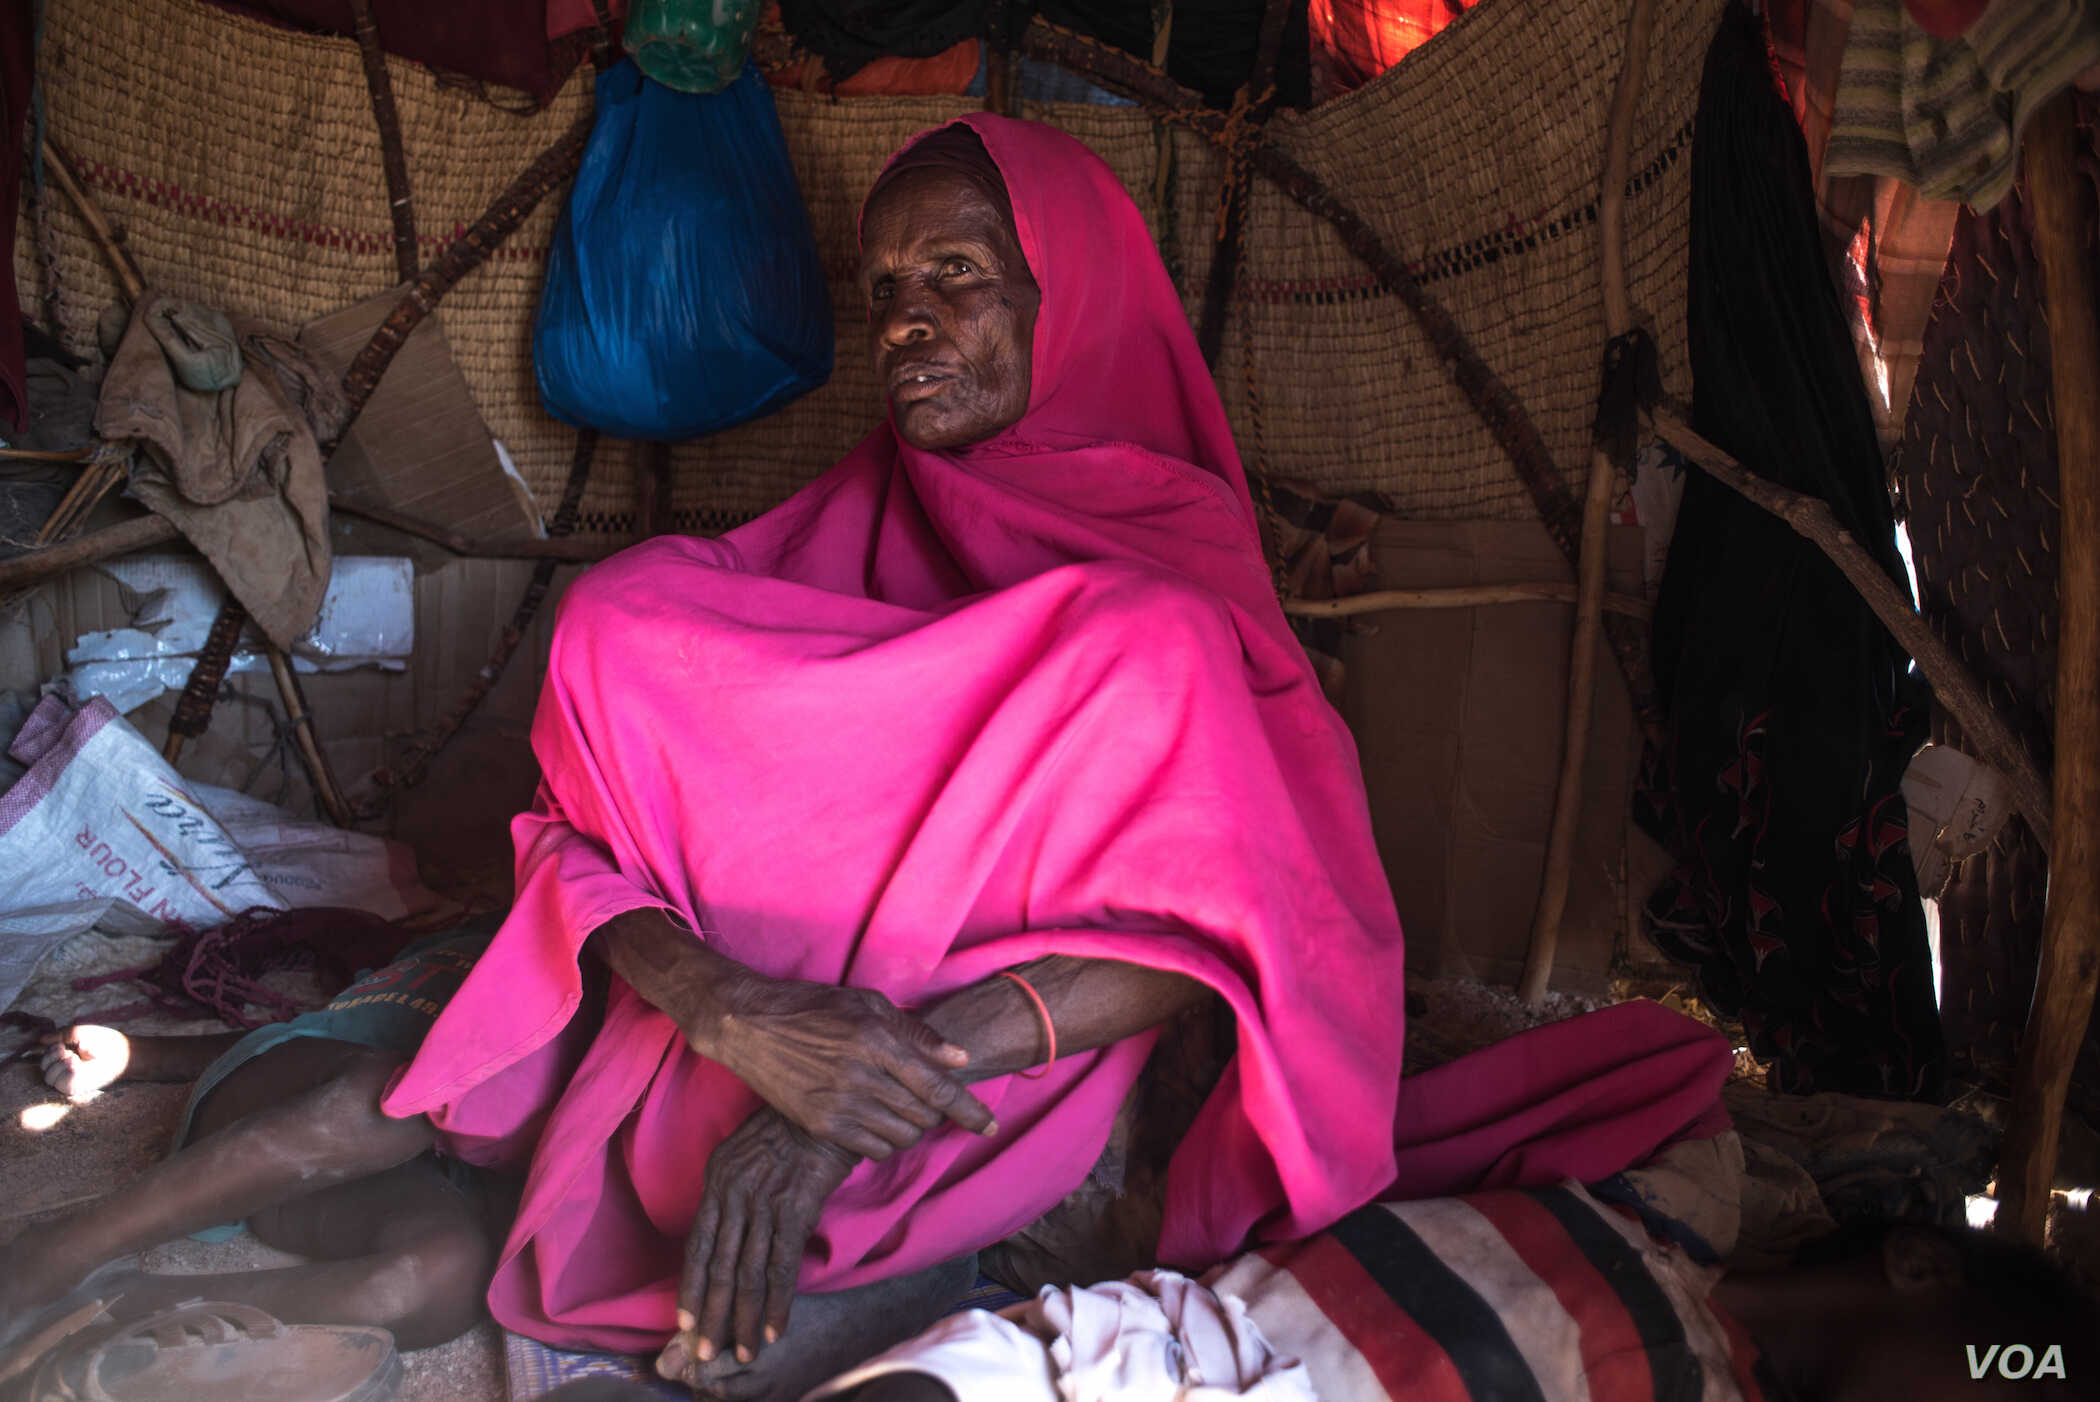 Geelo Ismail Mohamed sits in her makeshift hut after fleeing drought in Somaliland region of Somalia, February 9, 2017. (VOA/Jason Patinkin)